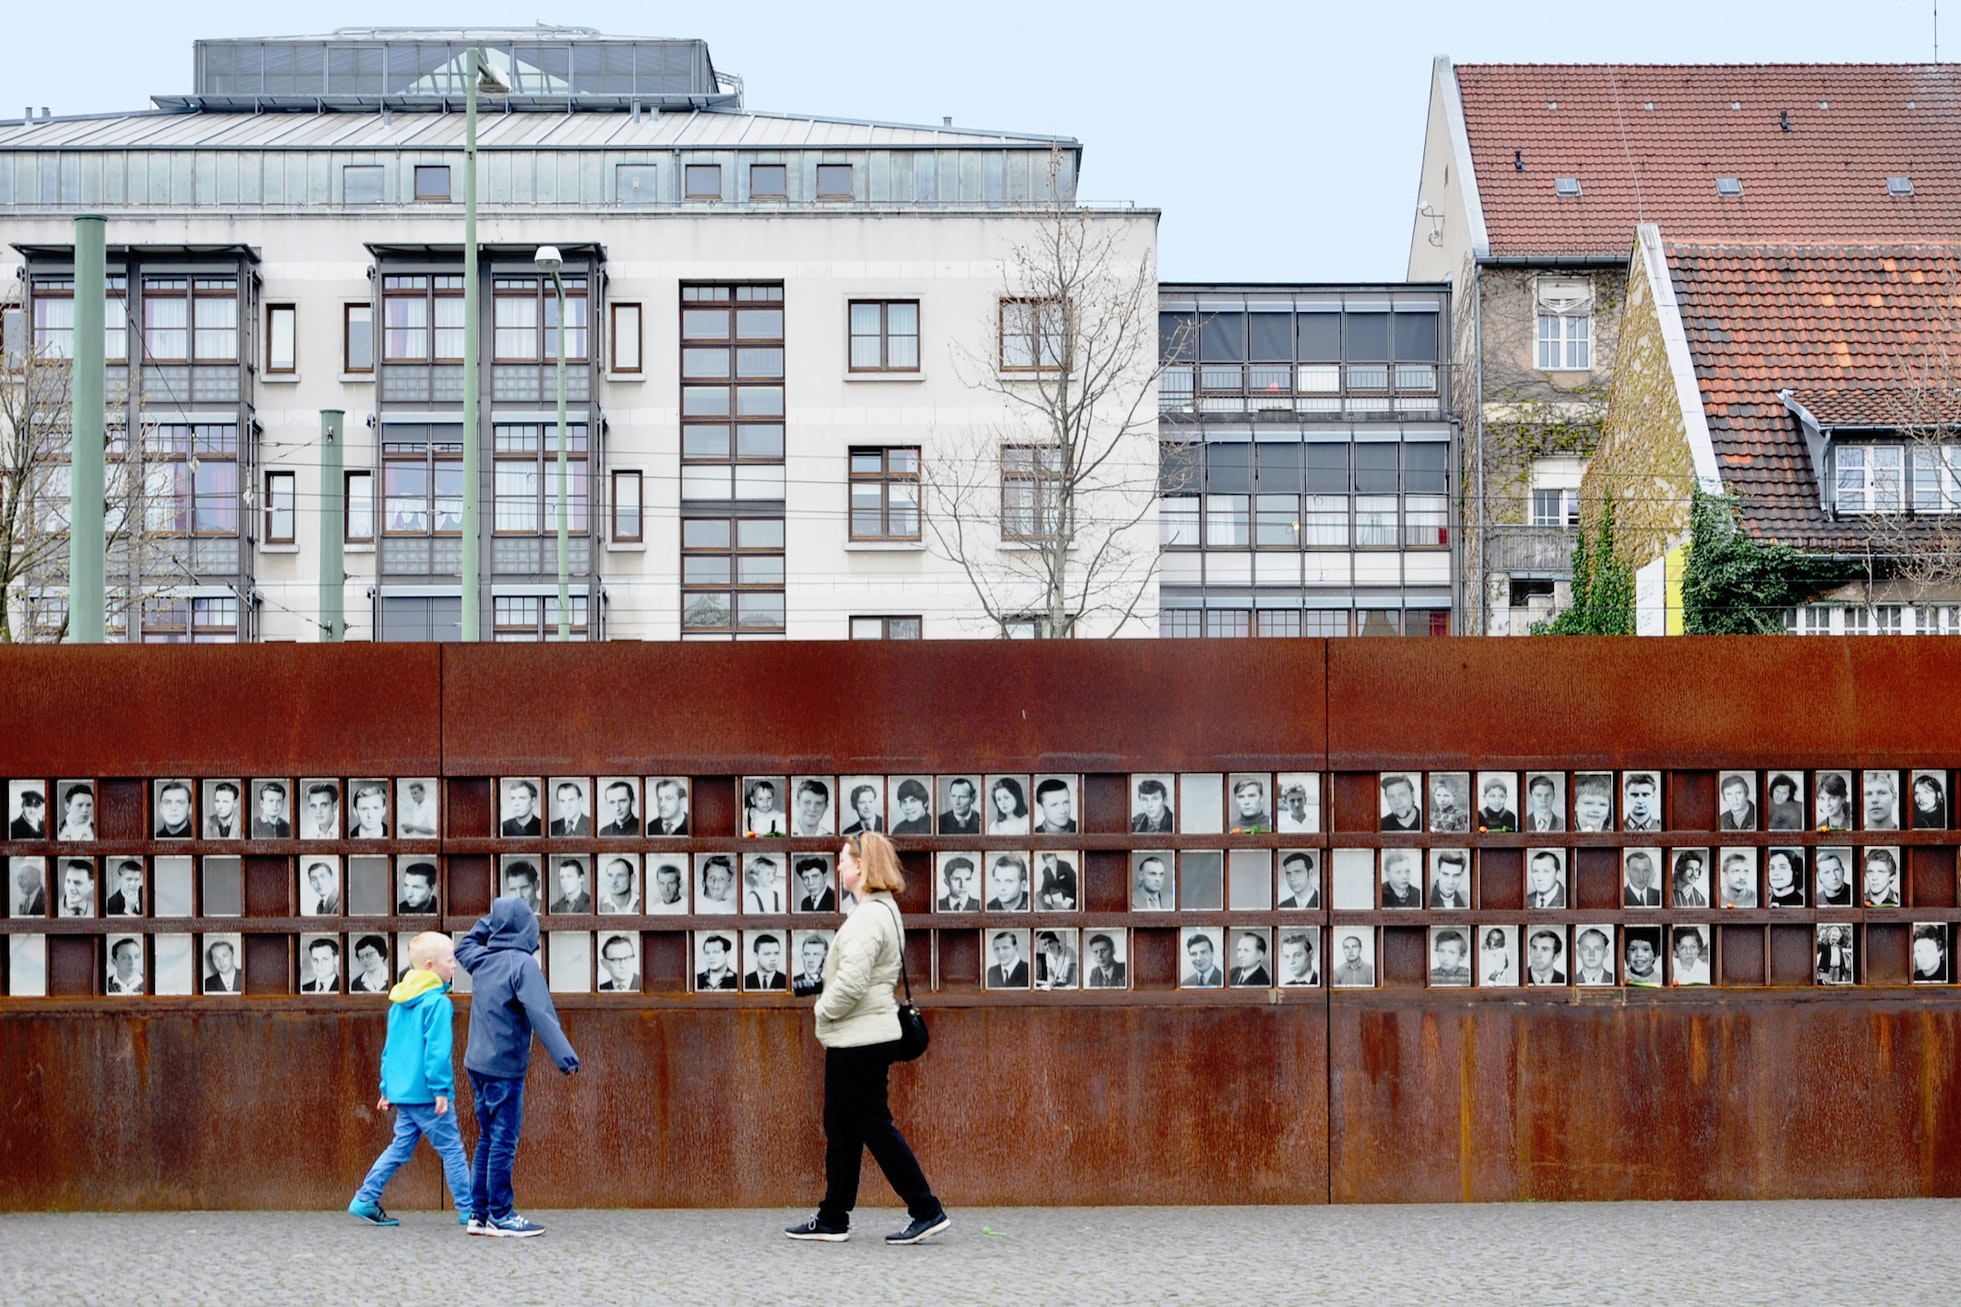 The Gedenkstätte Berliner Mauer (Berlin Wall Memorial) commemorates the lives lost as a result of the division of Berlin by the wall.